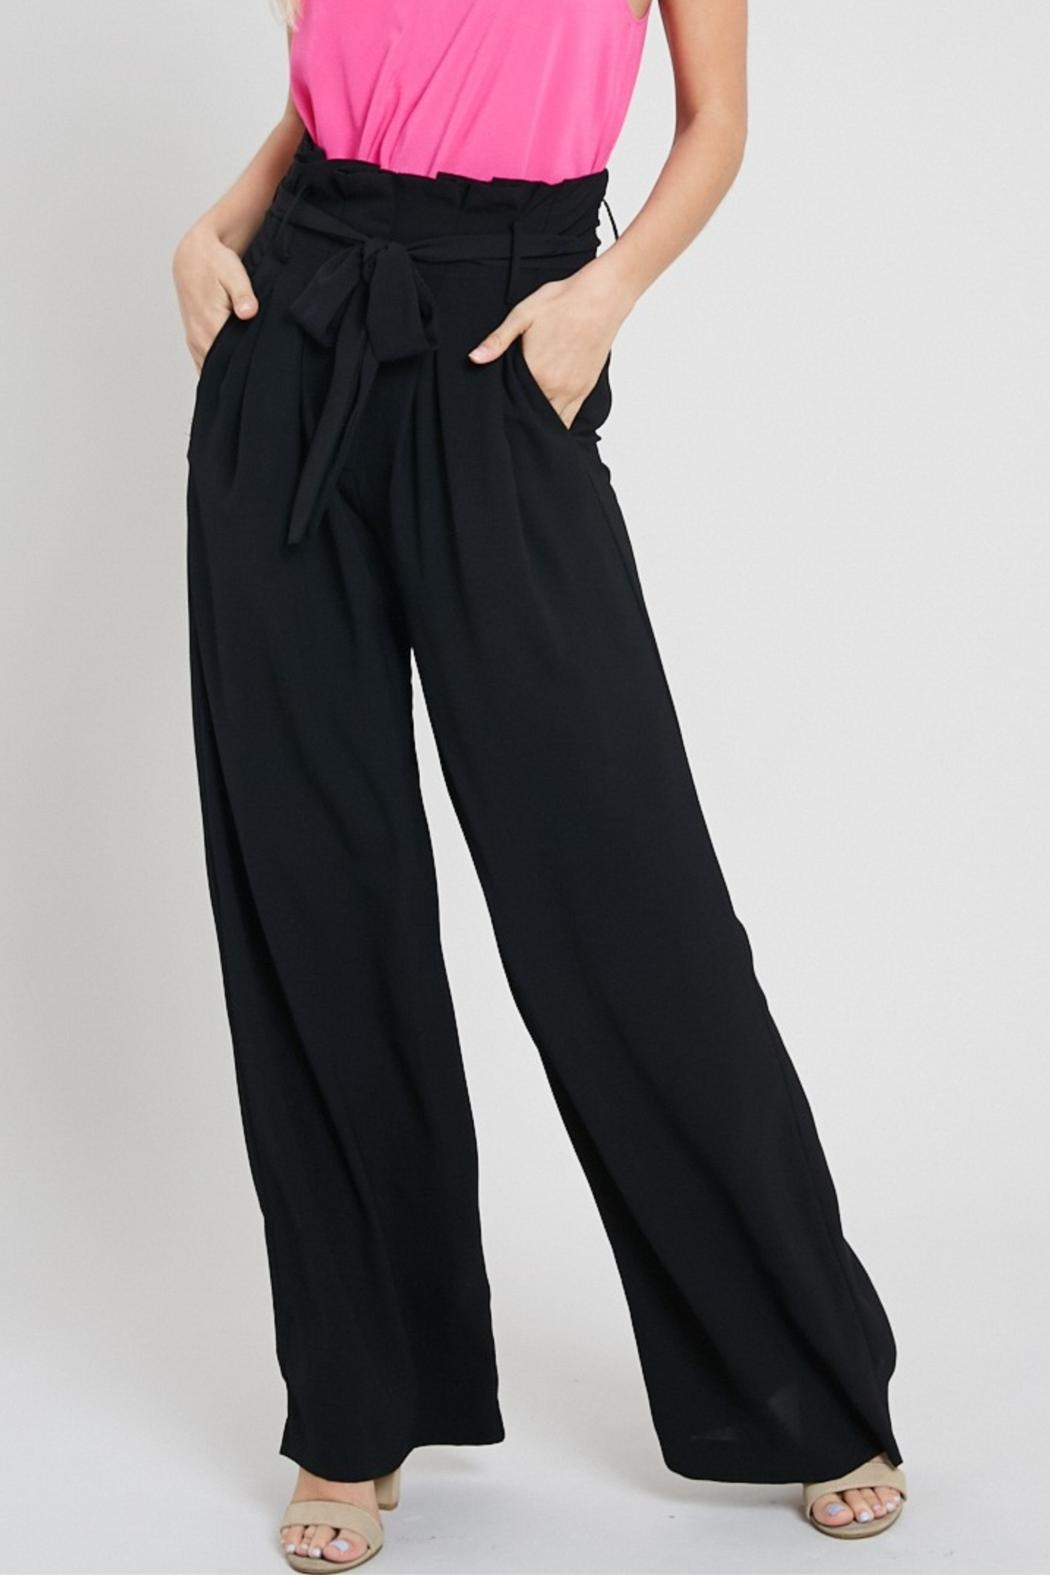 eesome Black Dress Pants - Front Cropped Image